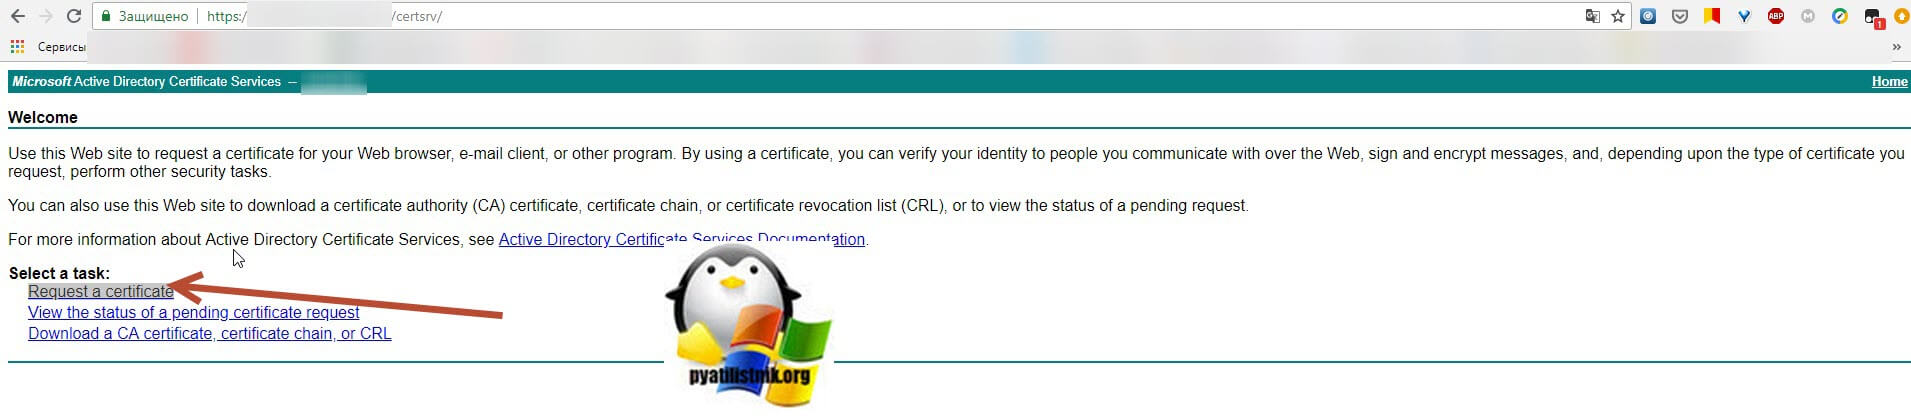 Request a certificat